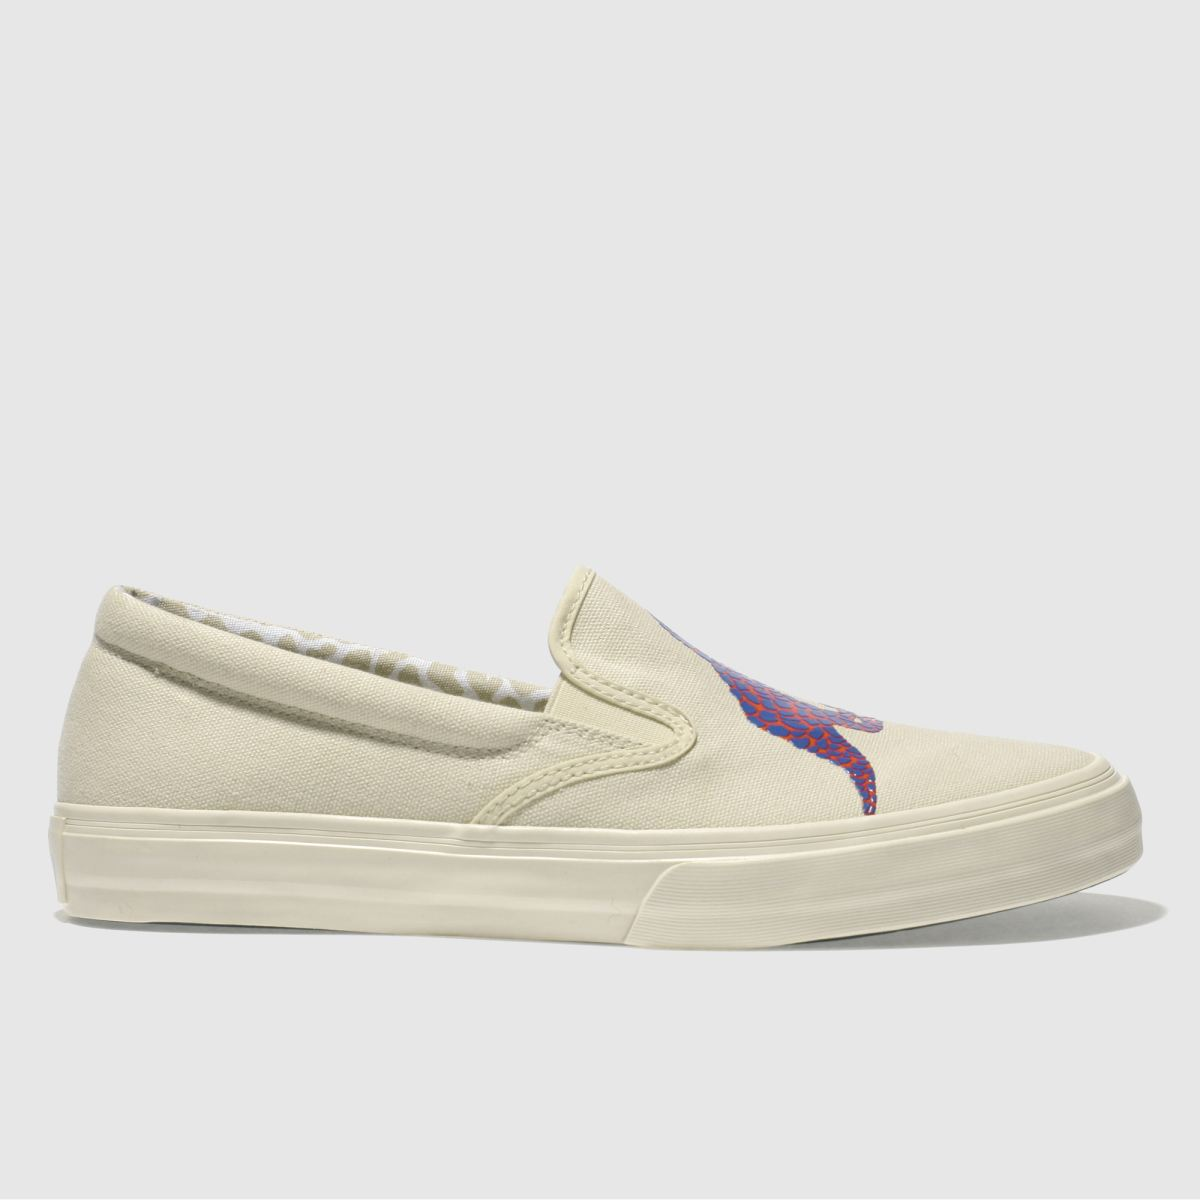 Paul Smith Shoe Ps Stone Clyde Trainers